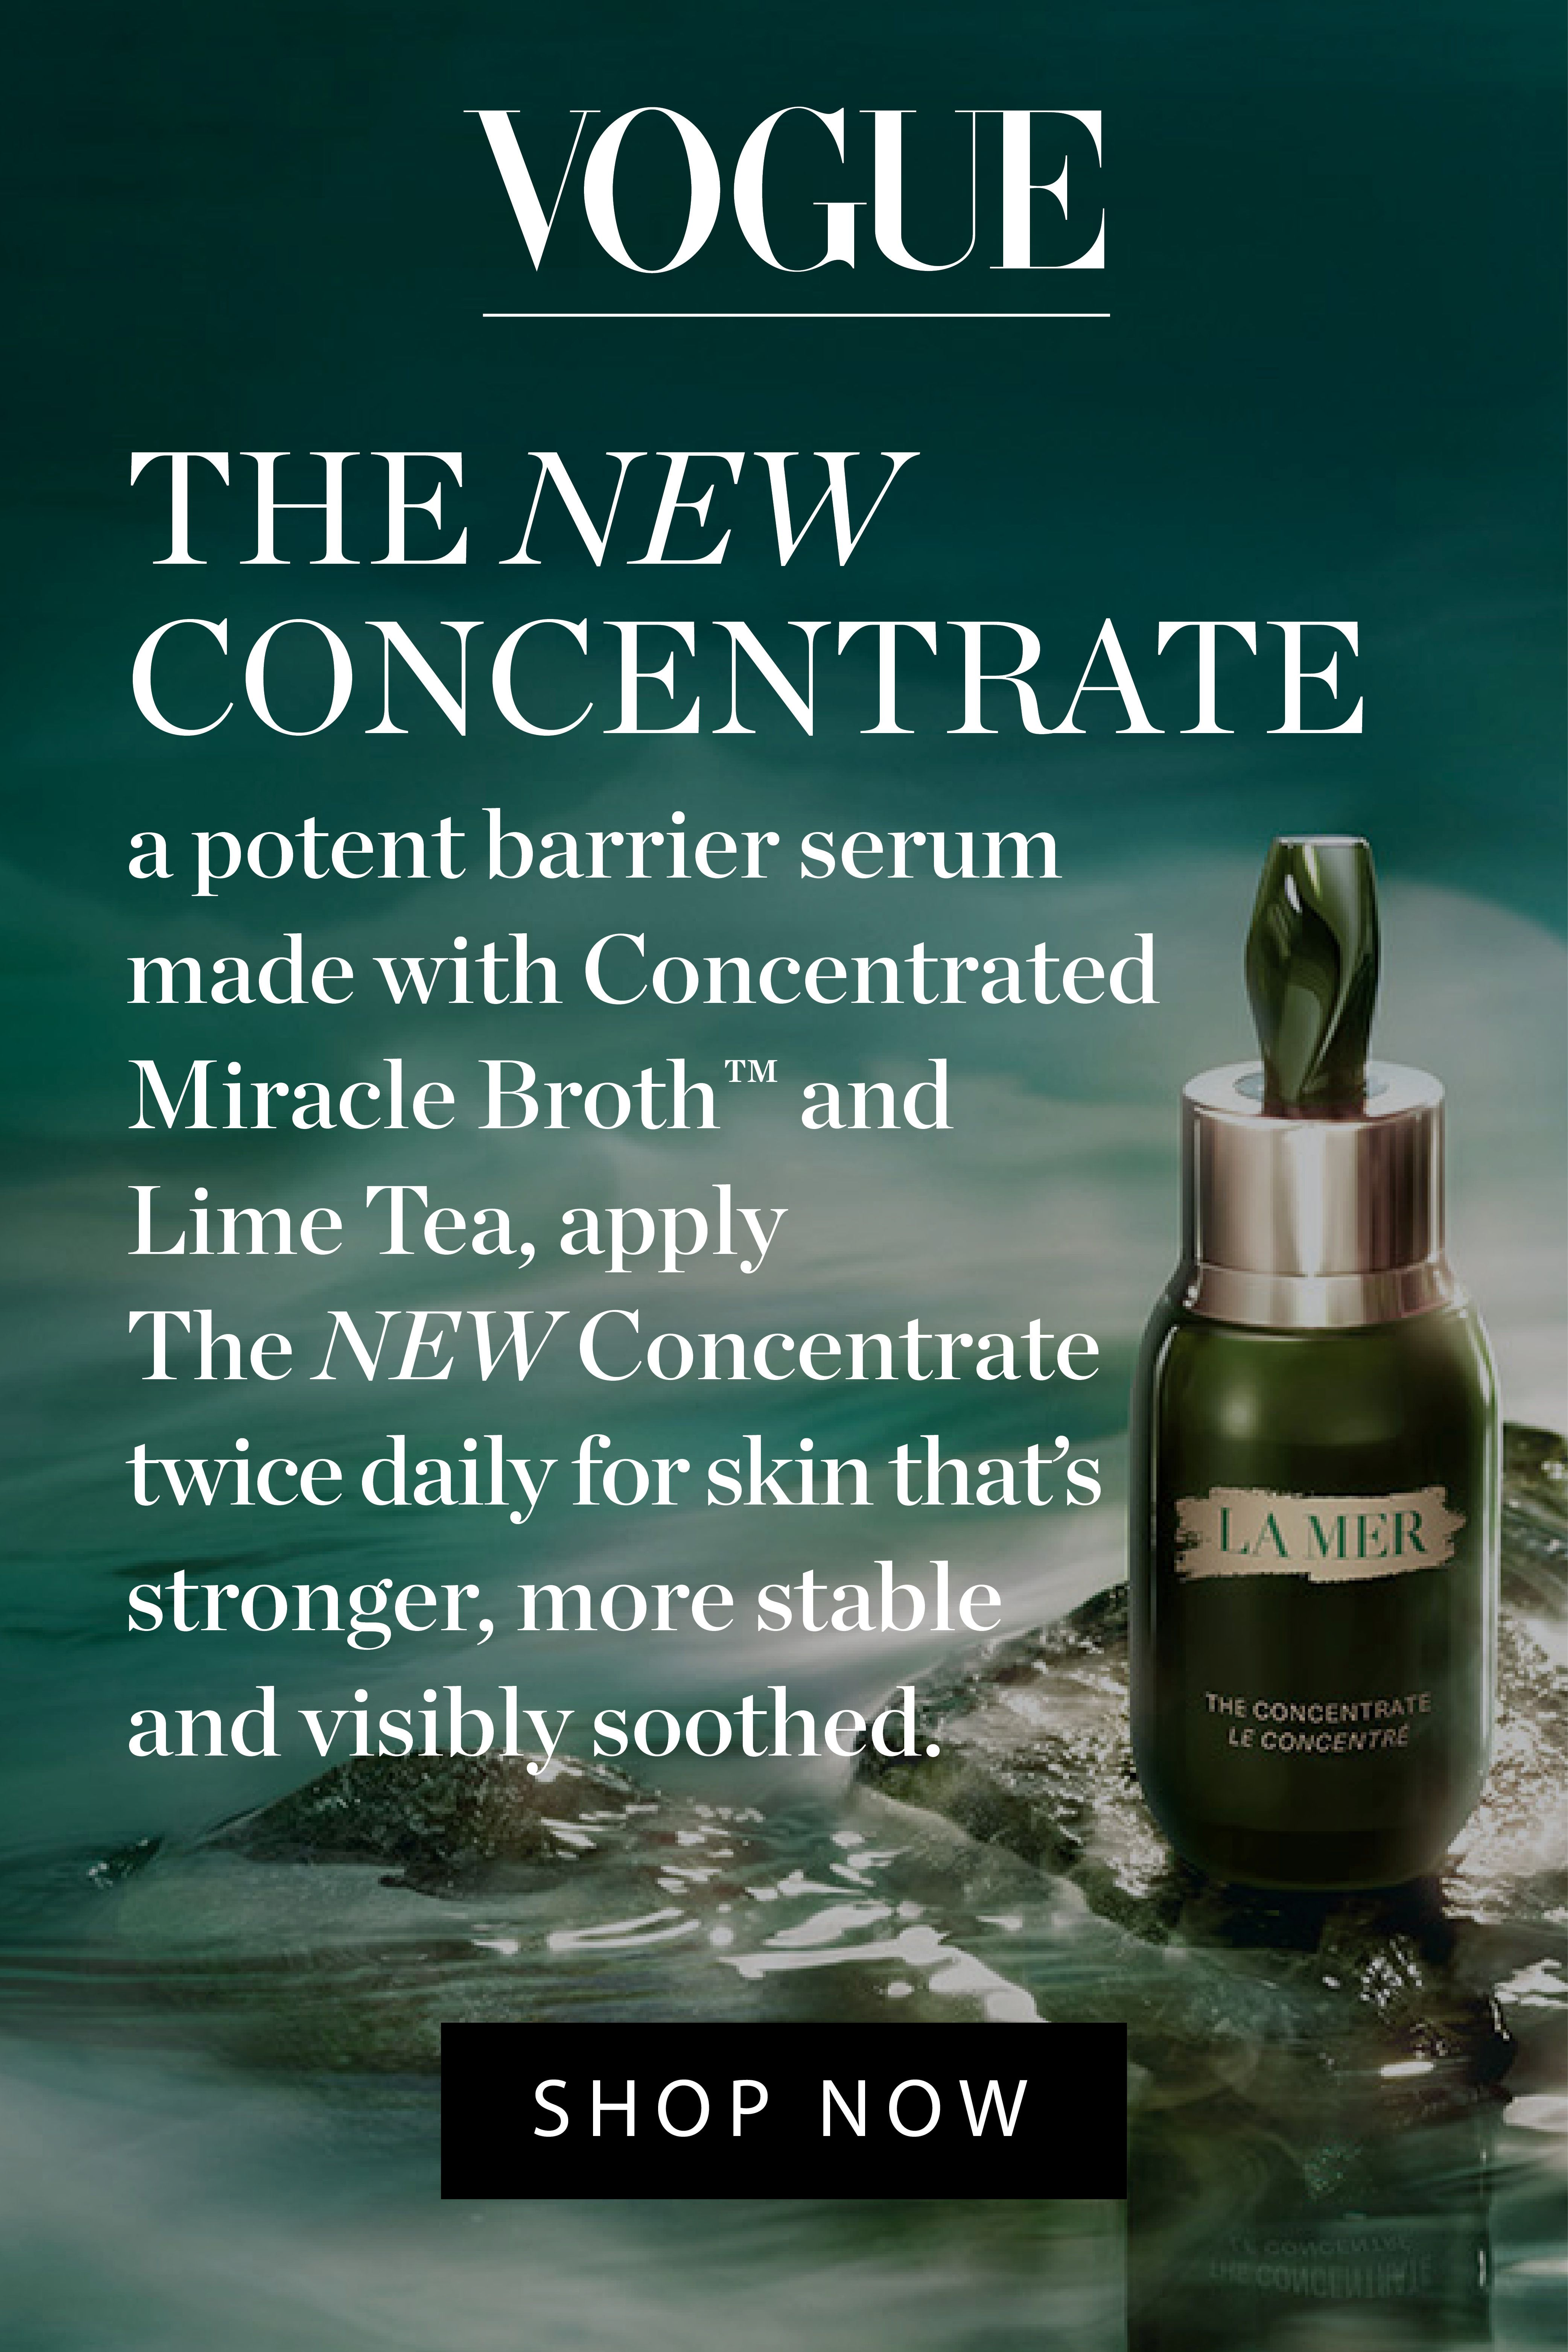 The Concentrate Skin Serum La Mer Official Site in